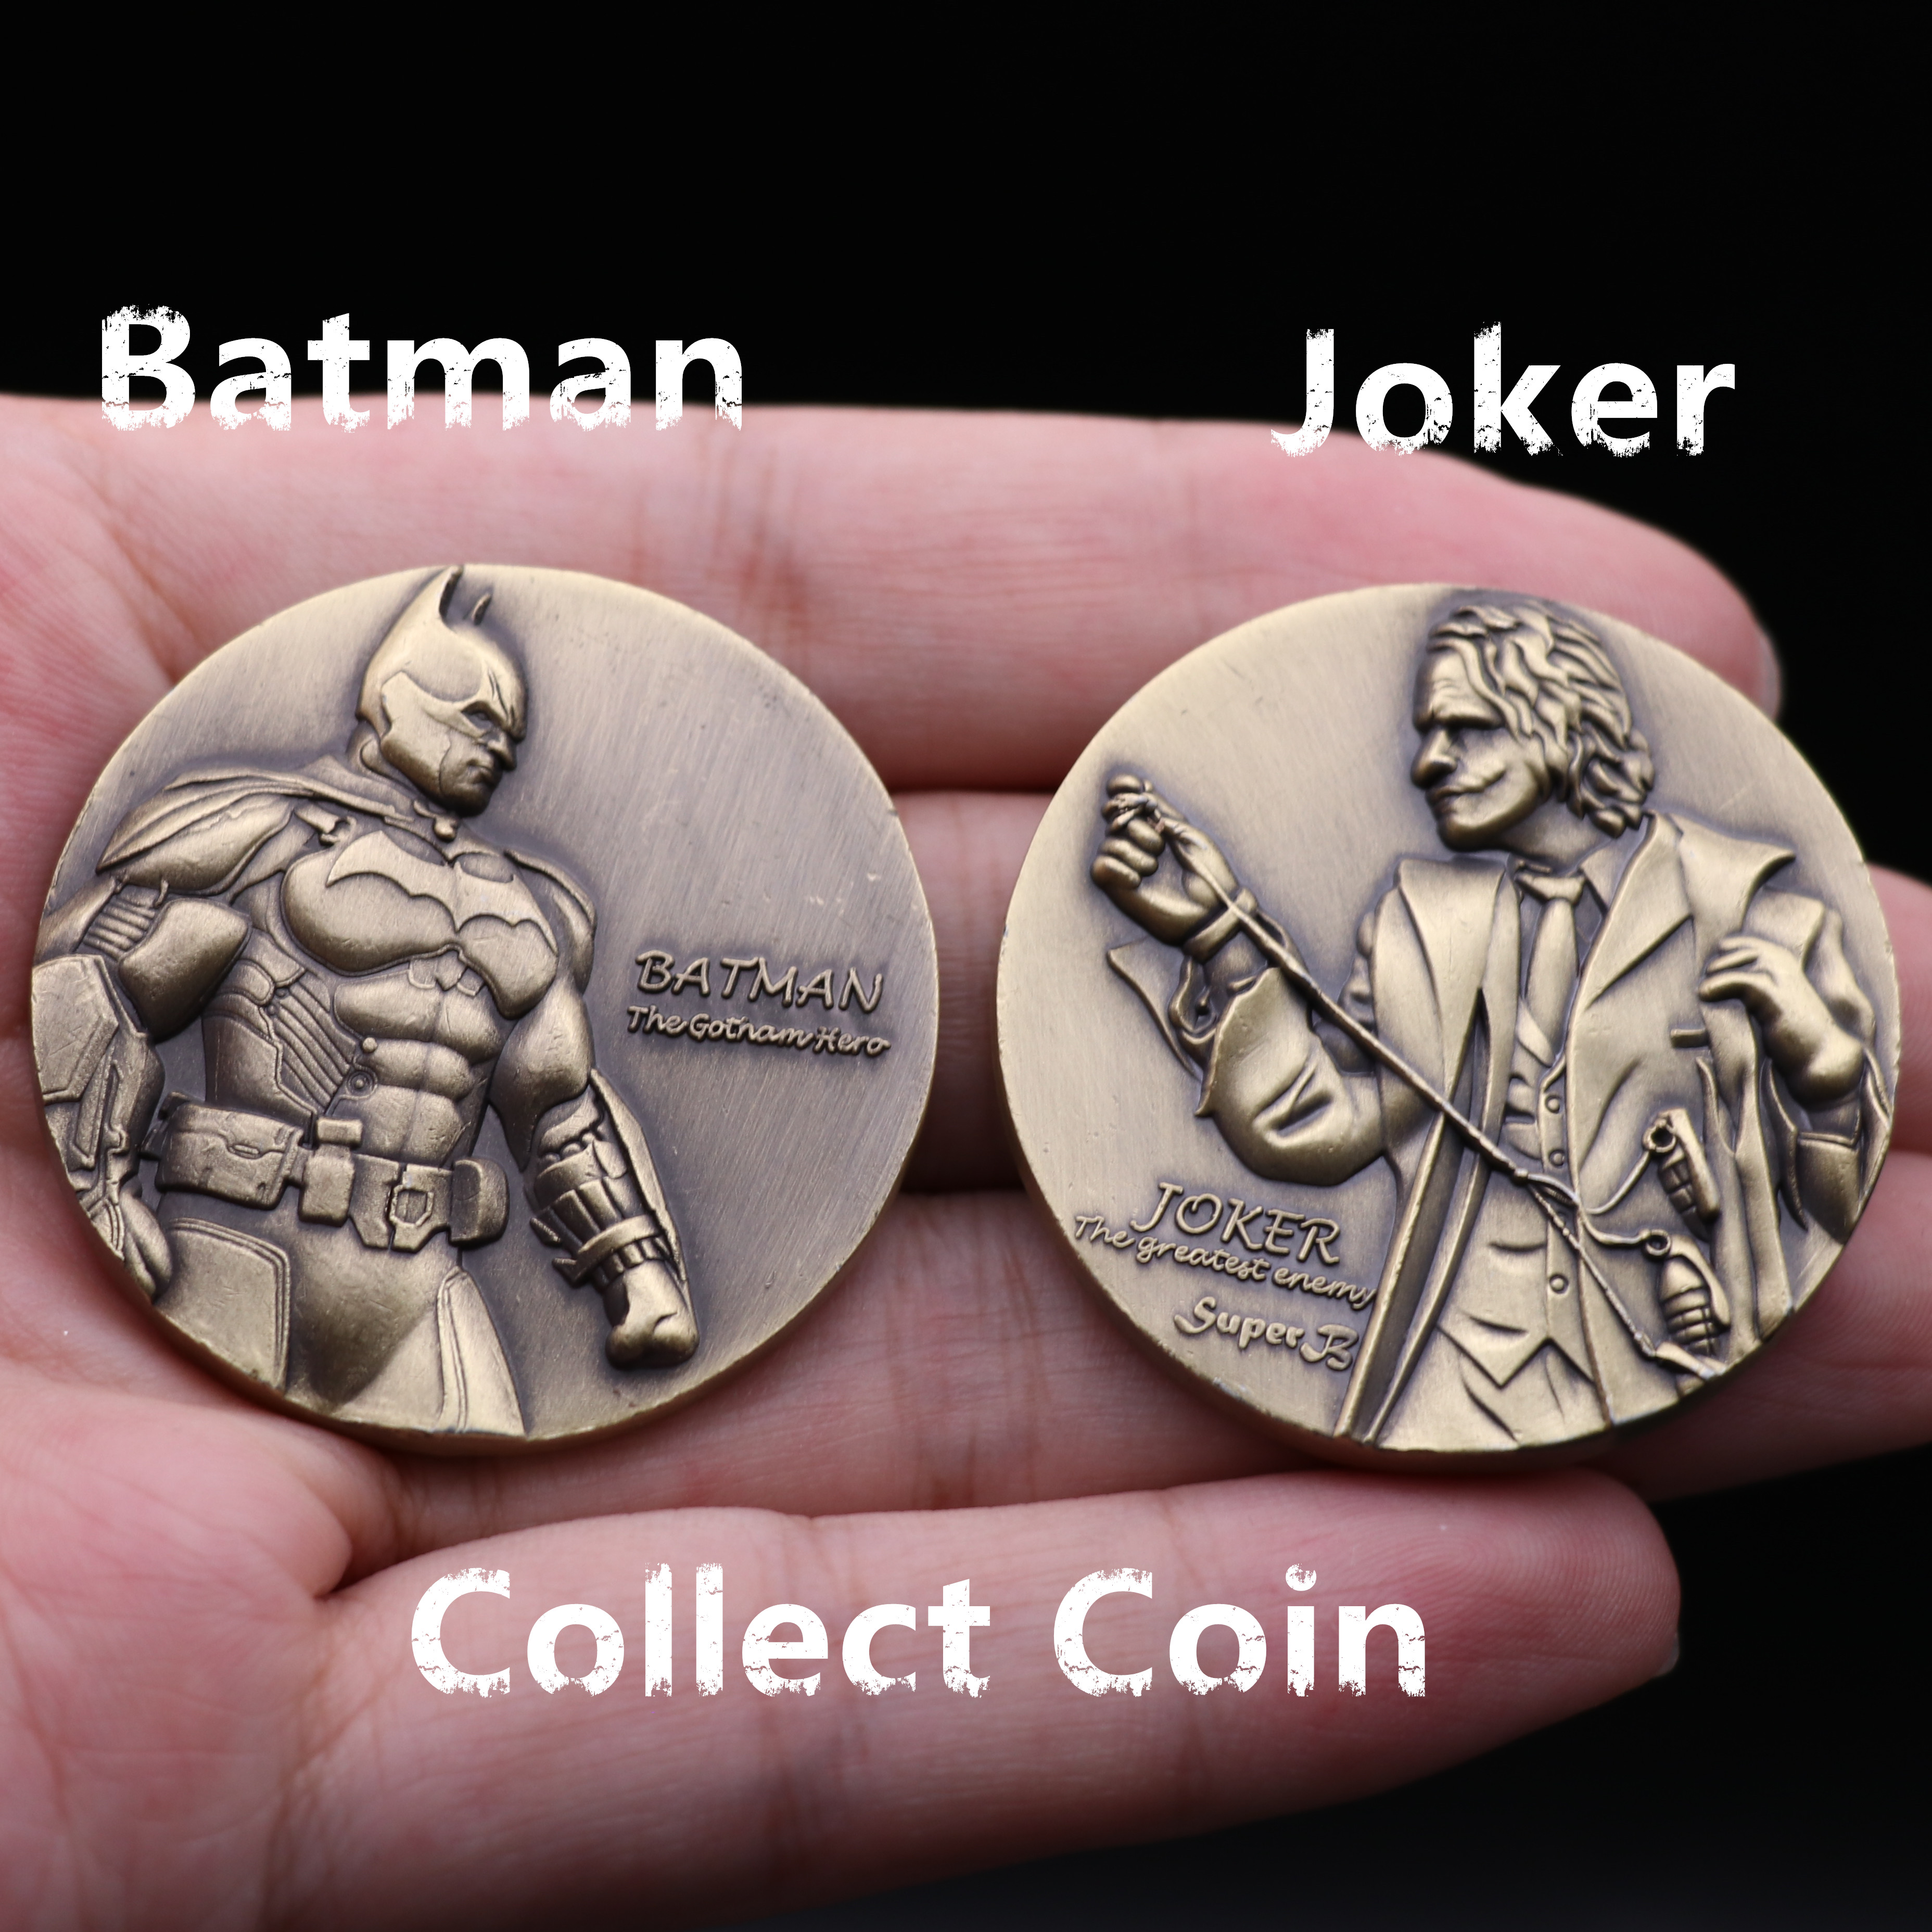 New Movie Gotham Batman Joker Collect Coin 3D Cosplay Accessories Badge Lucky Coin Decision Coin Funny Fancy Toy Christmas Gift